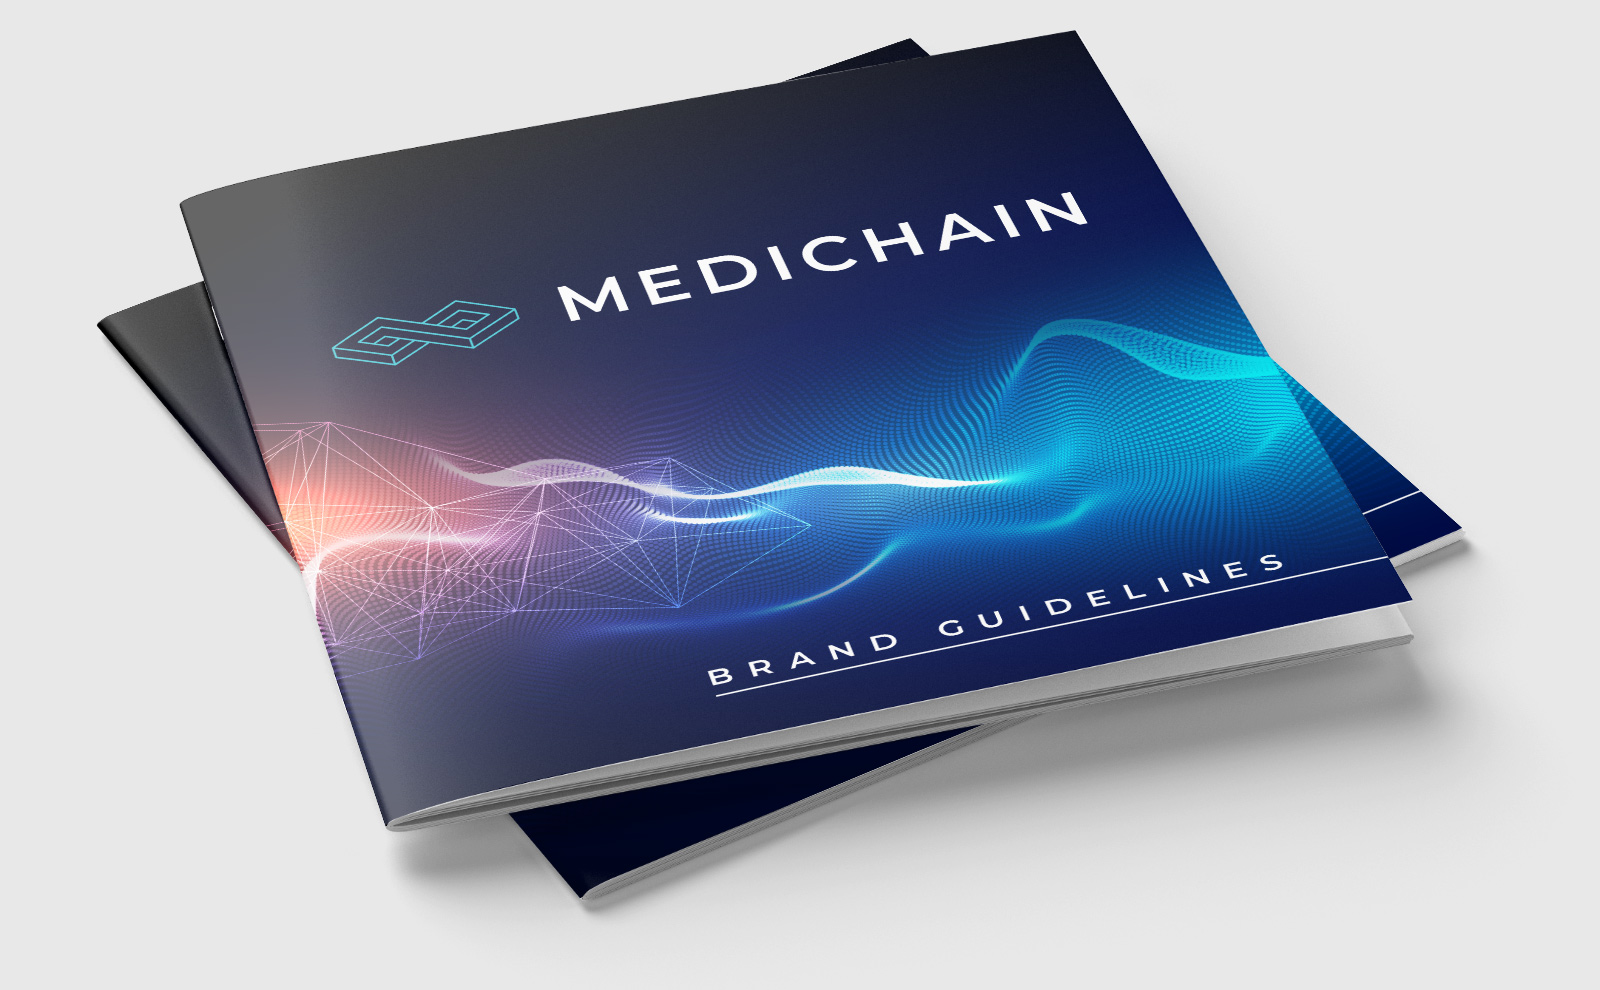 MediChain Brand Guidelines Print Cover